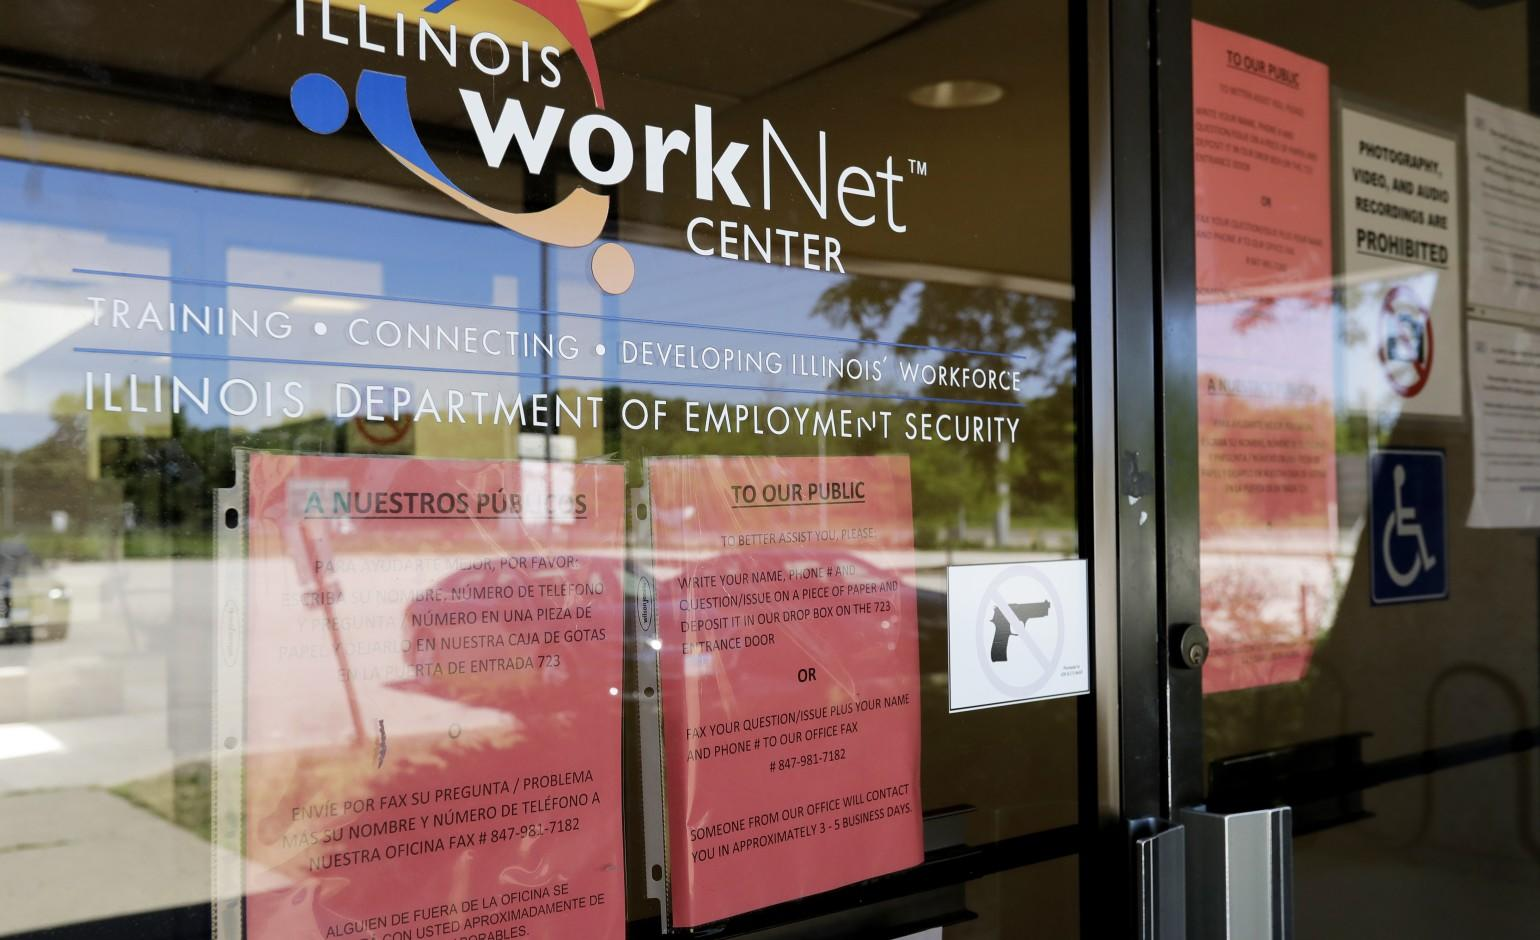 After massive fraud, tech official calls for overhaul of Illinois unemployment system